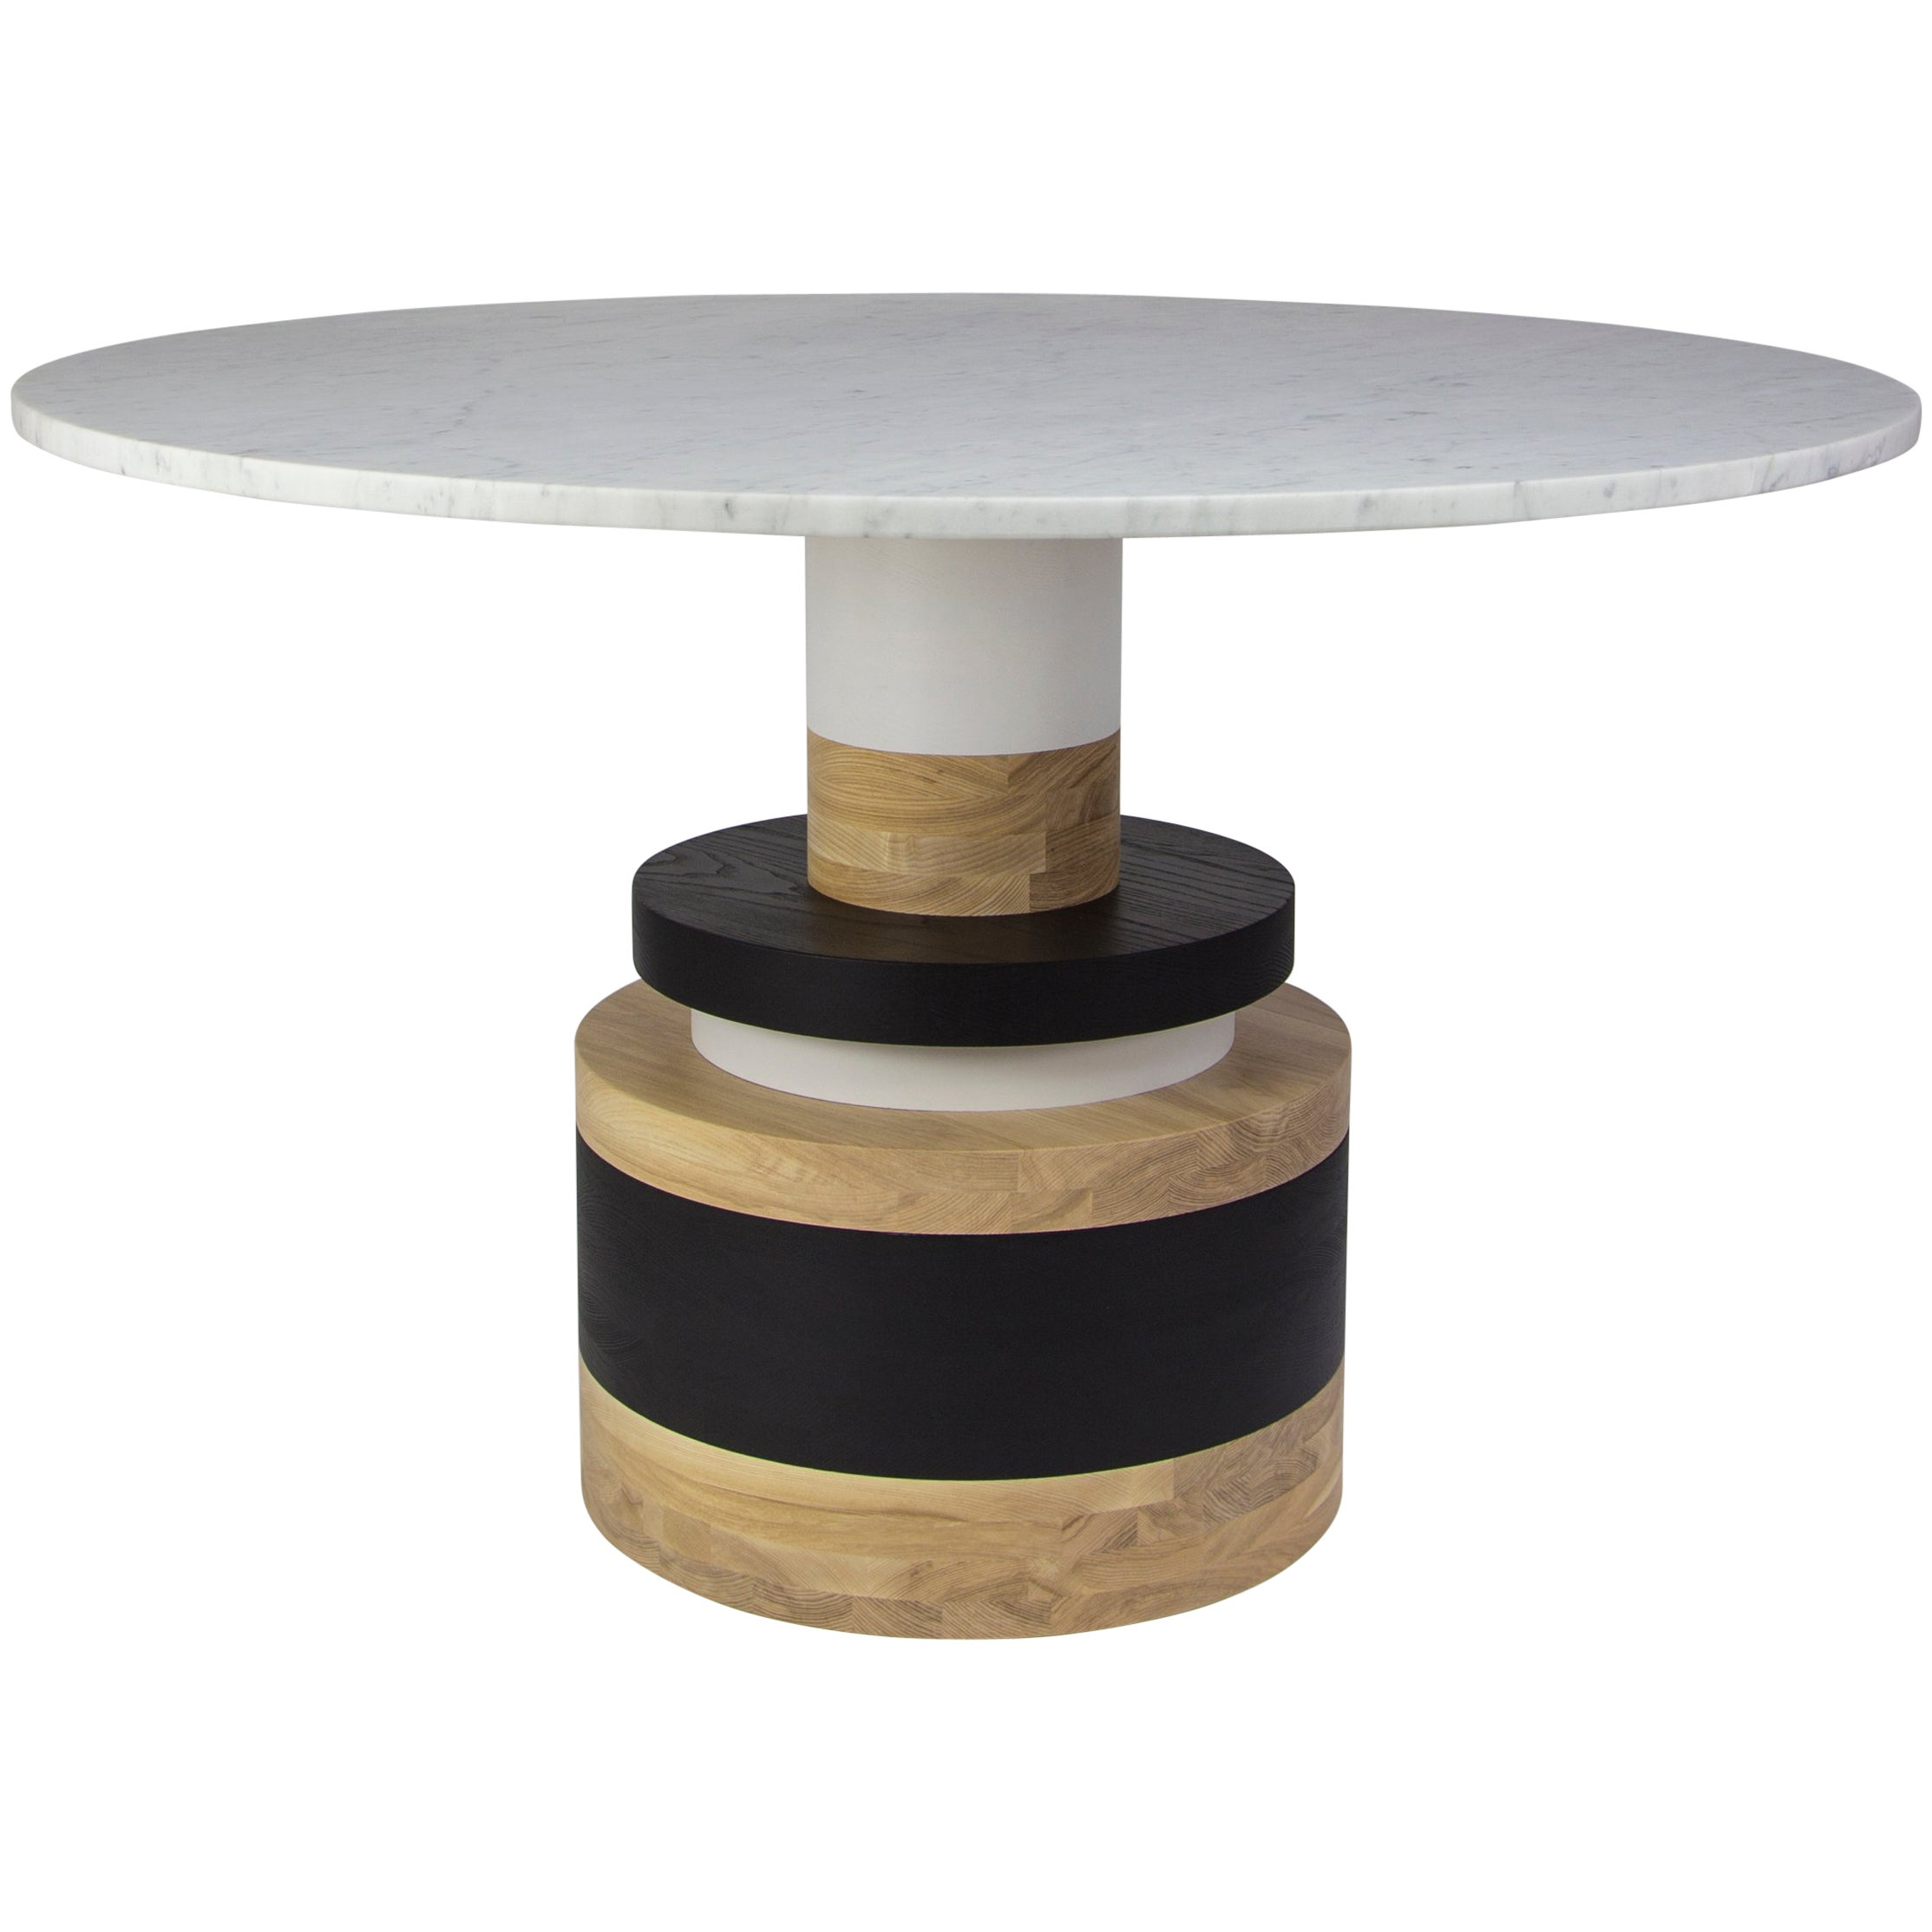 Customizable Sass Dining Table from Souda, Medium, Marble Top